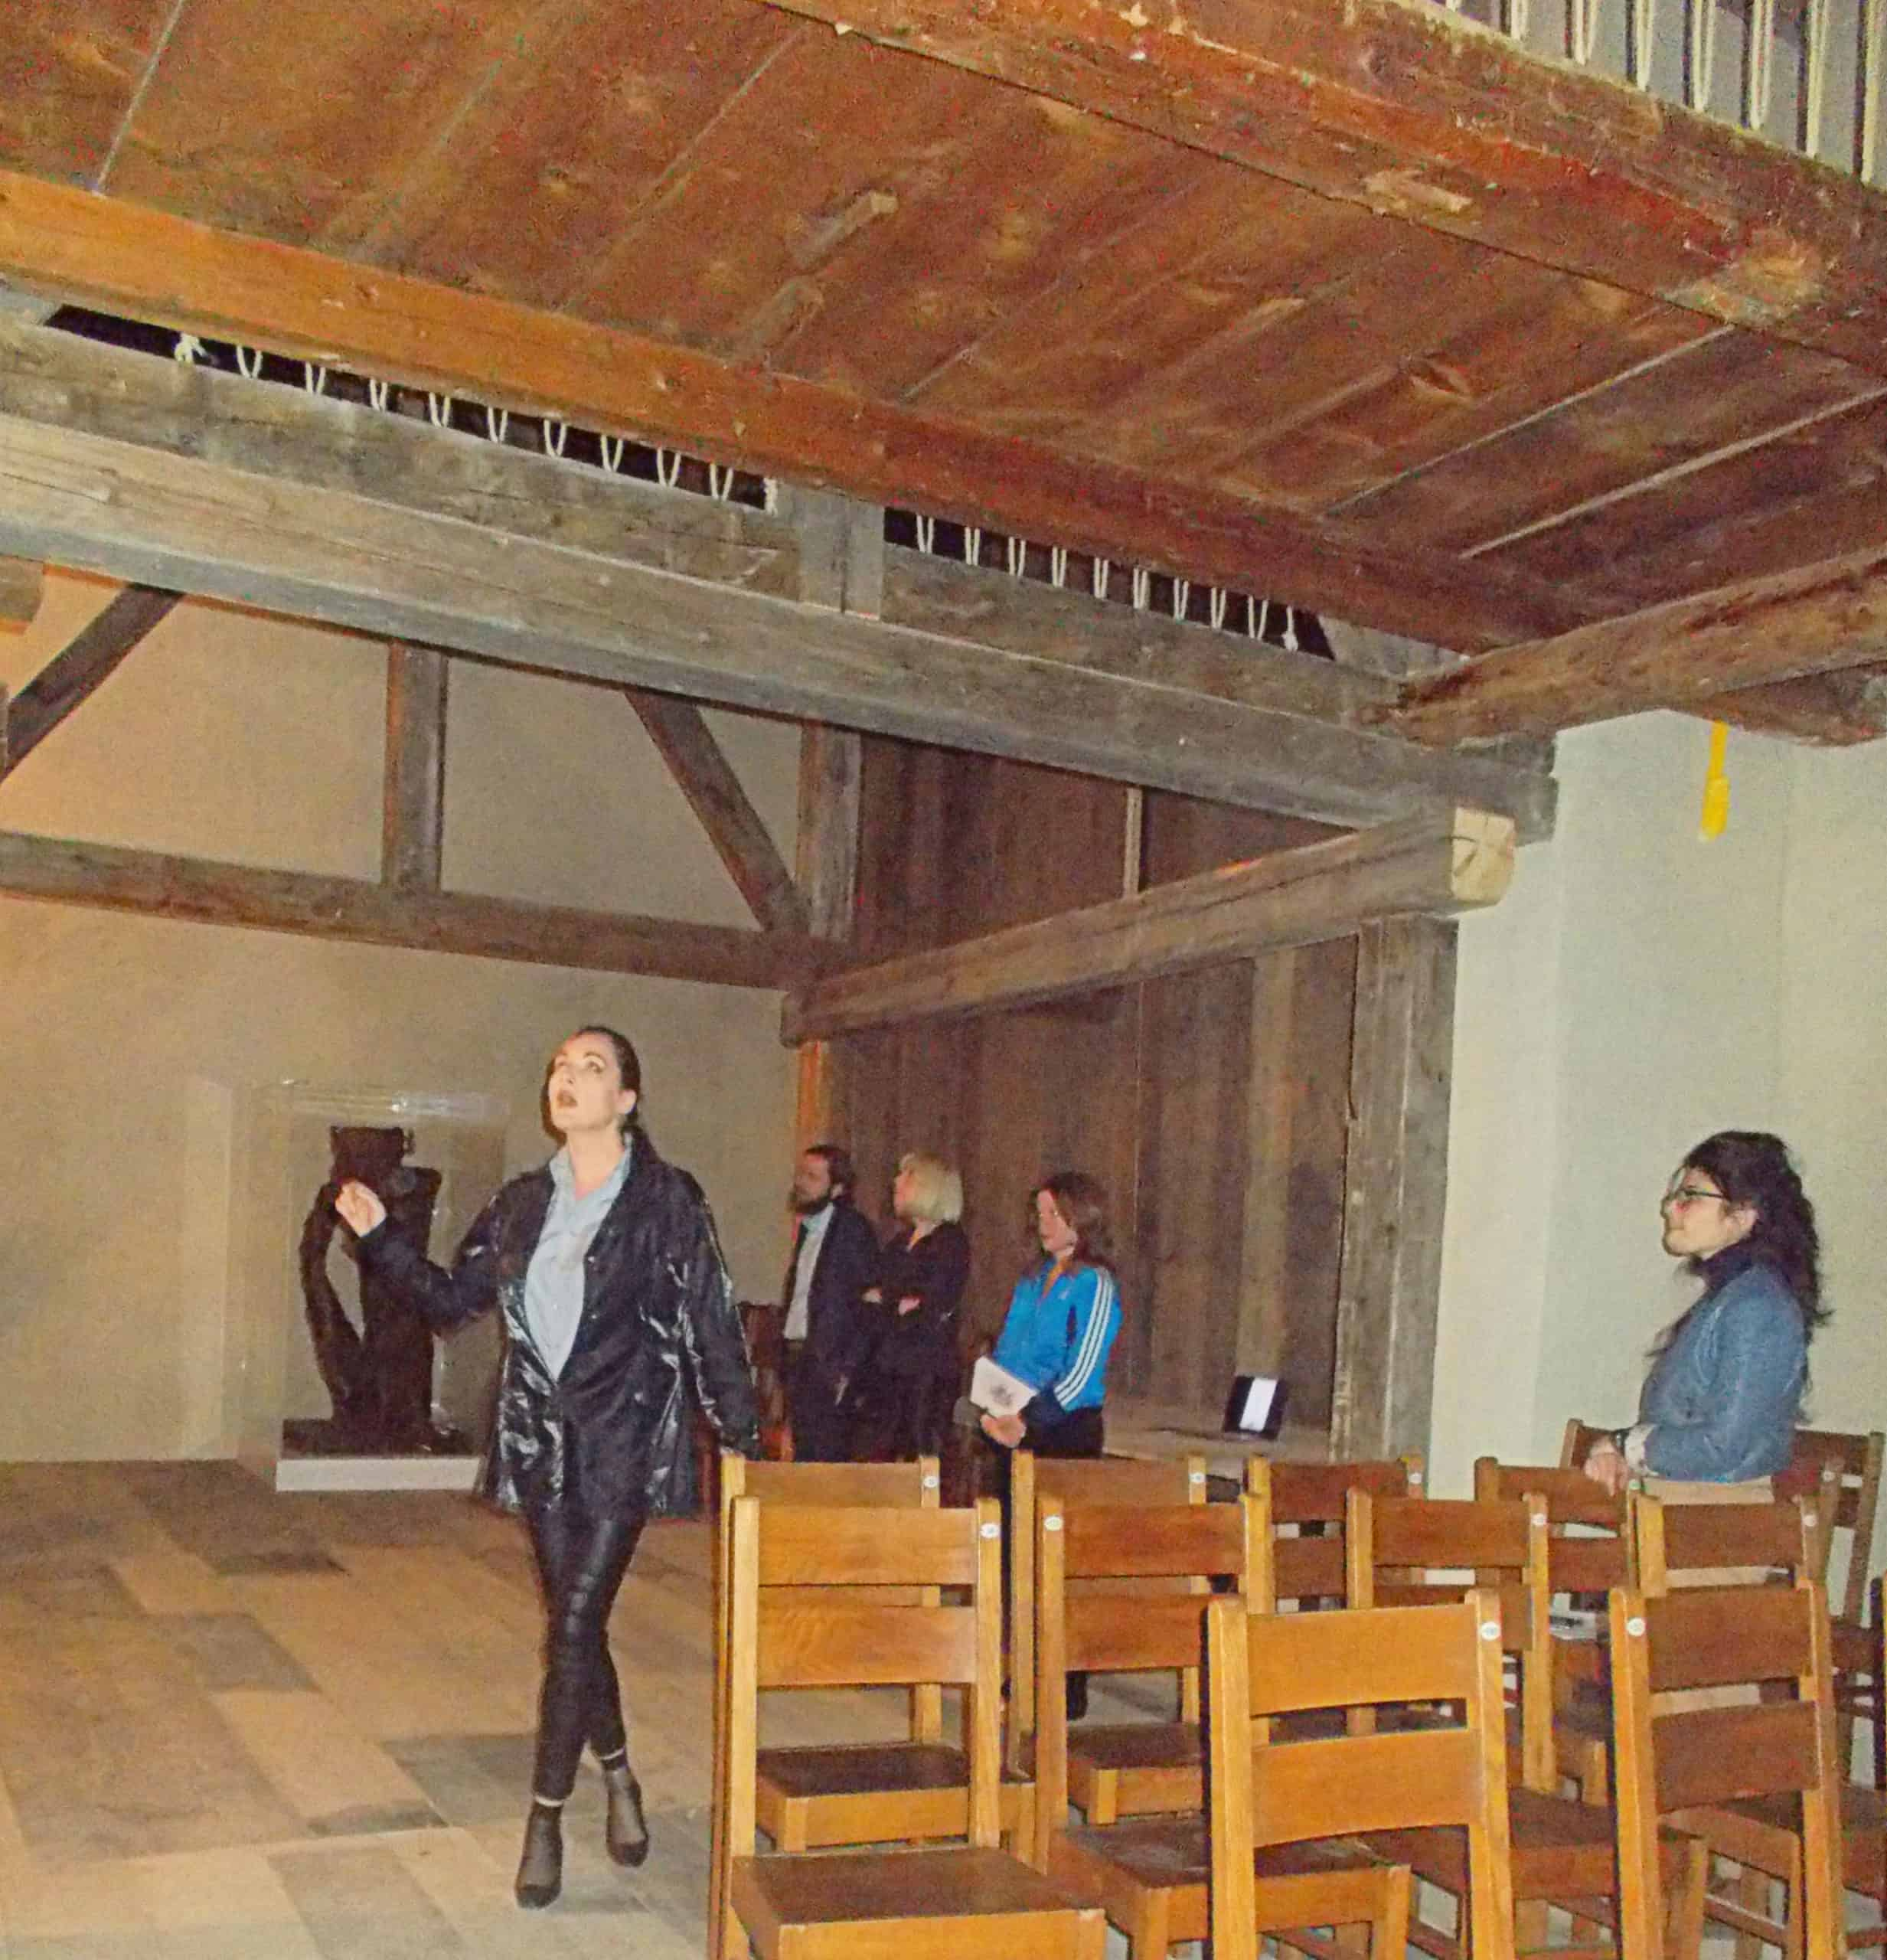 Singing at even, acoustics research at chasa temporars Susch Muzeum. Miss Kulczyk, Artemis Chryzostomidou